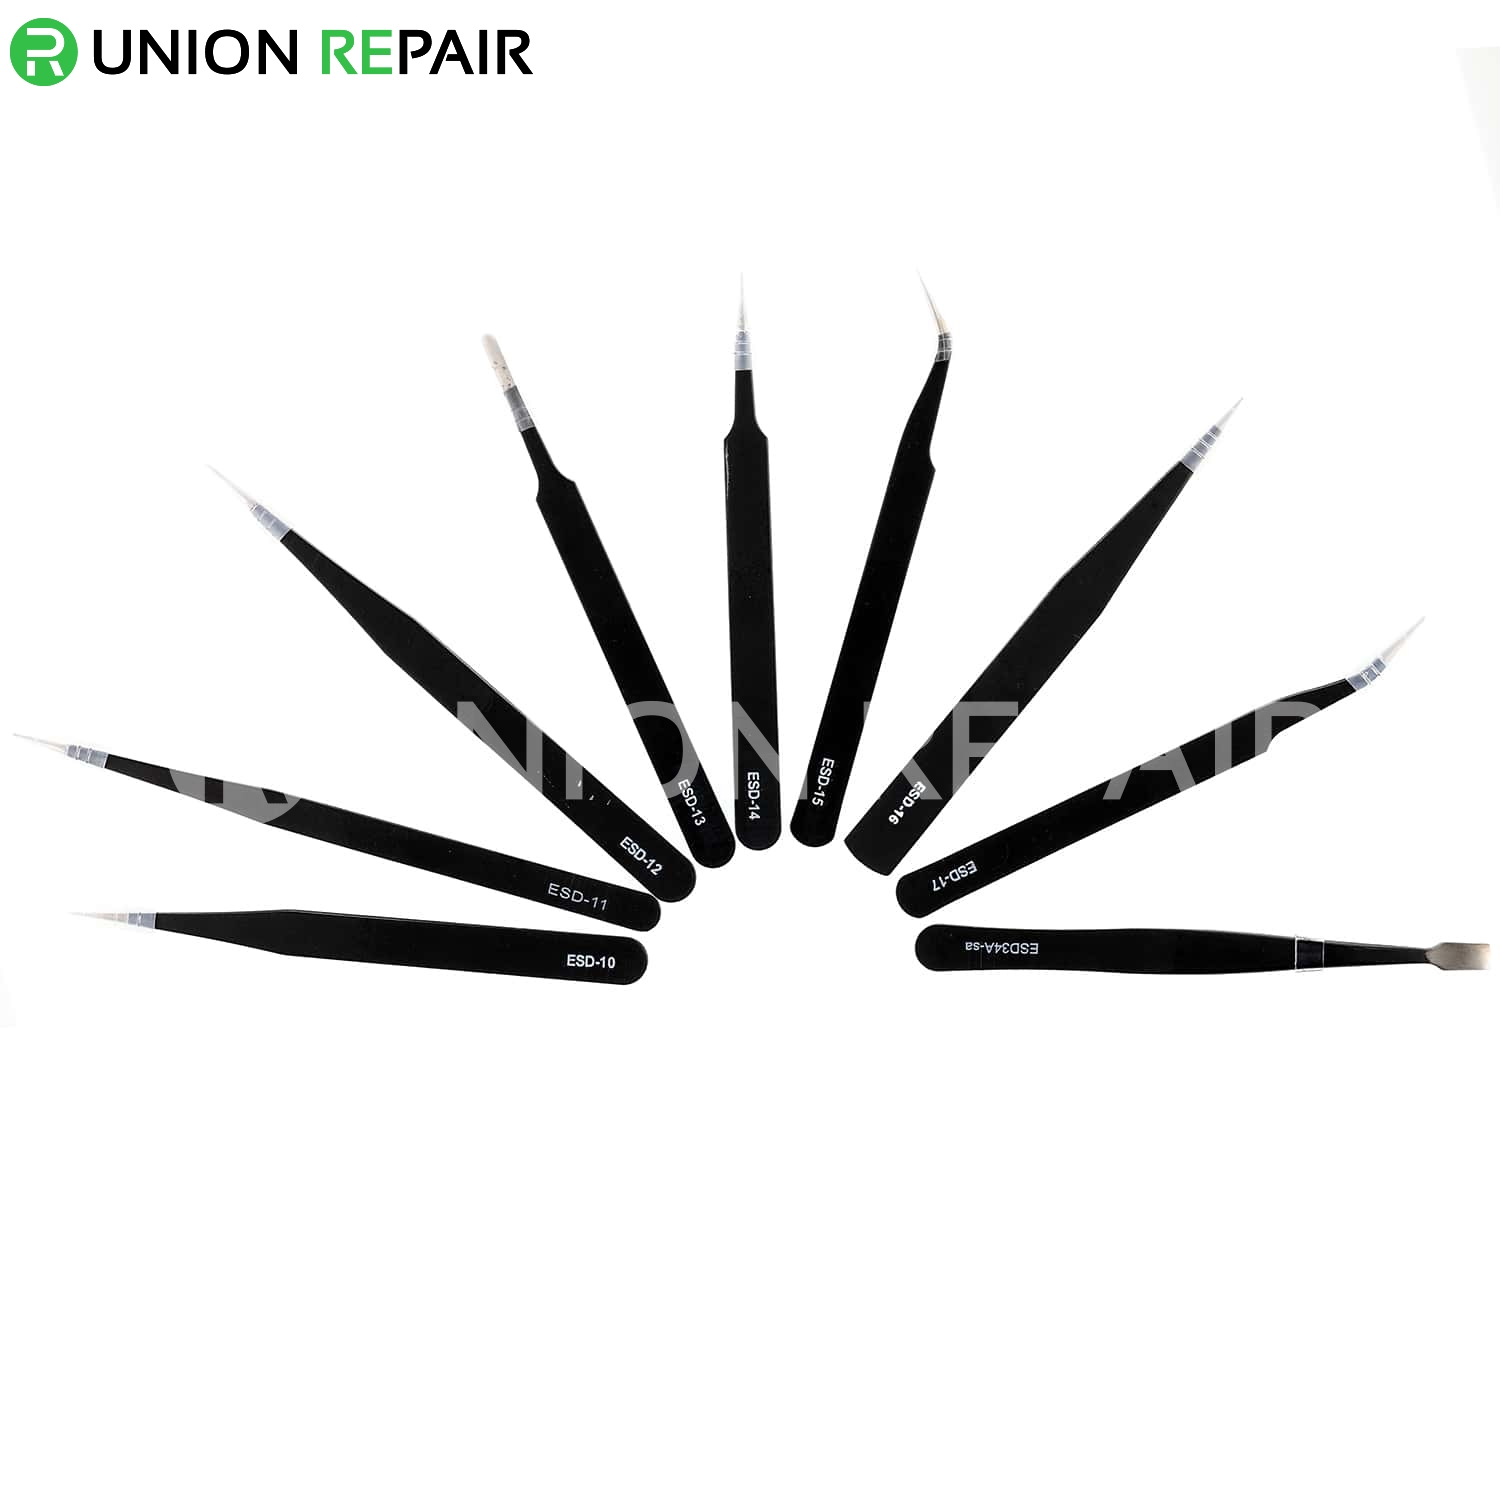 9 in 1 Anti-Static Stainless Steel Tweezers Kit